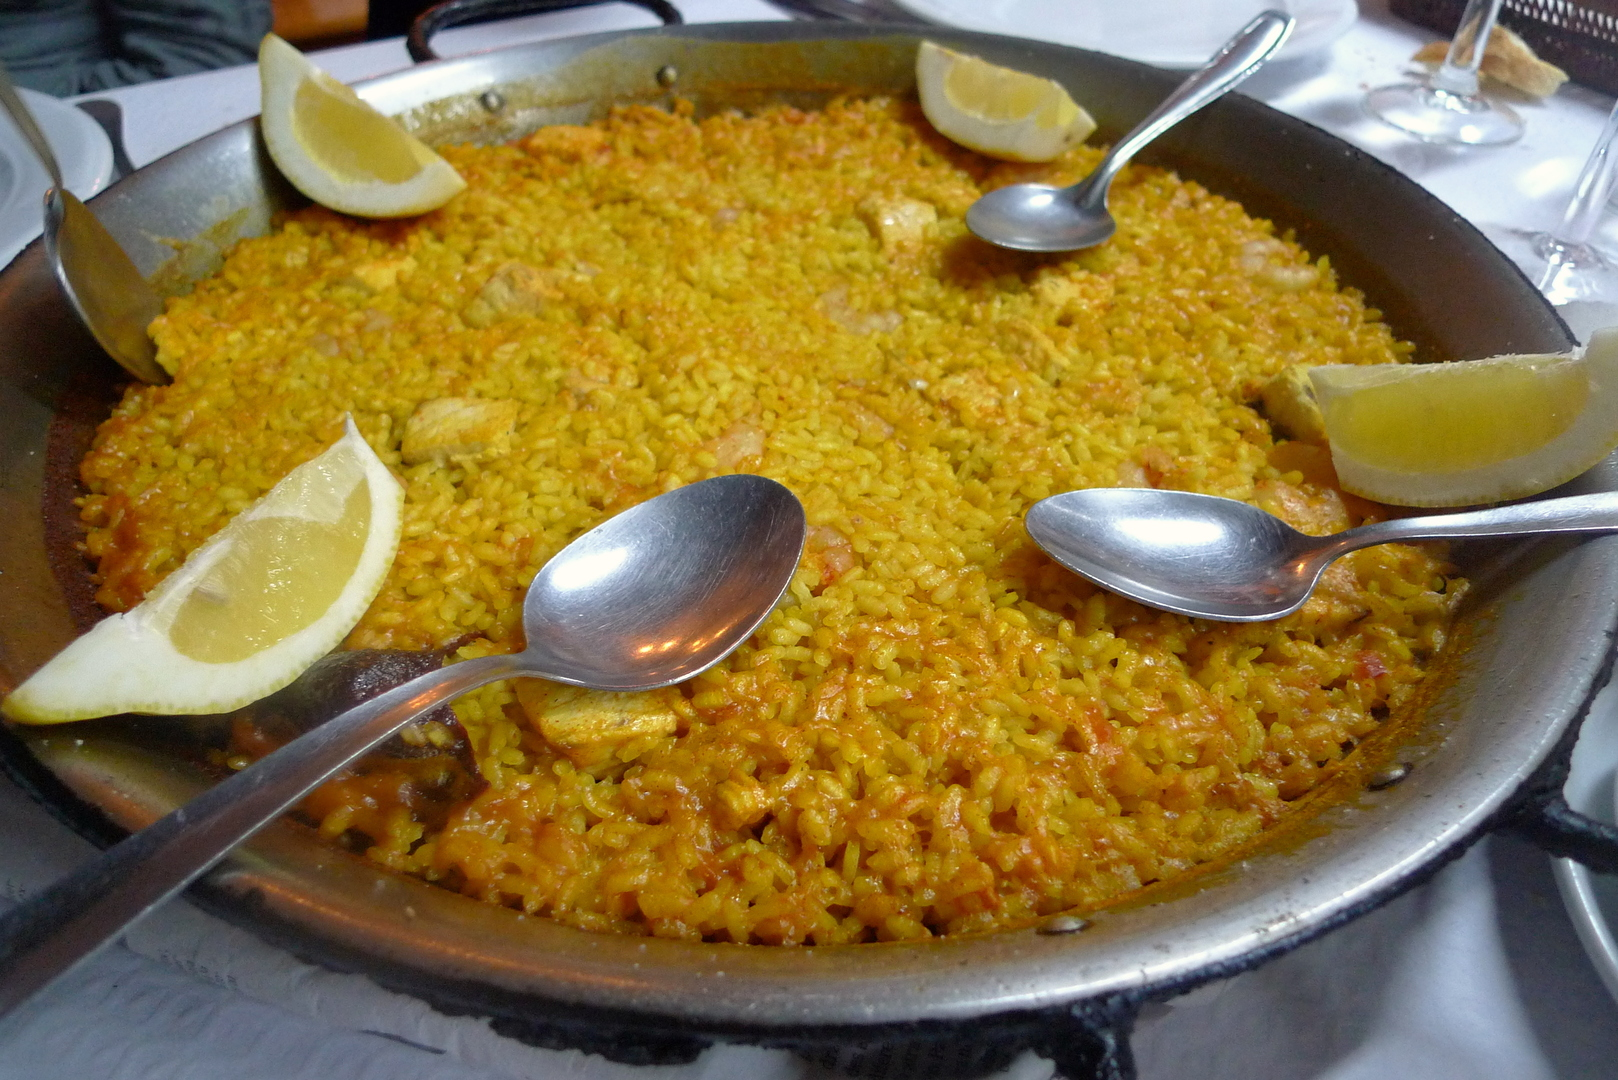 Arroz del Senoret with lemon